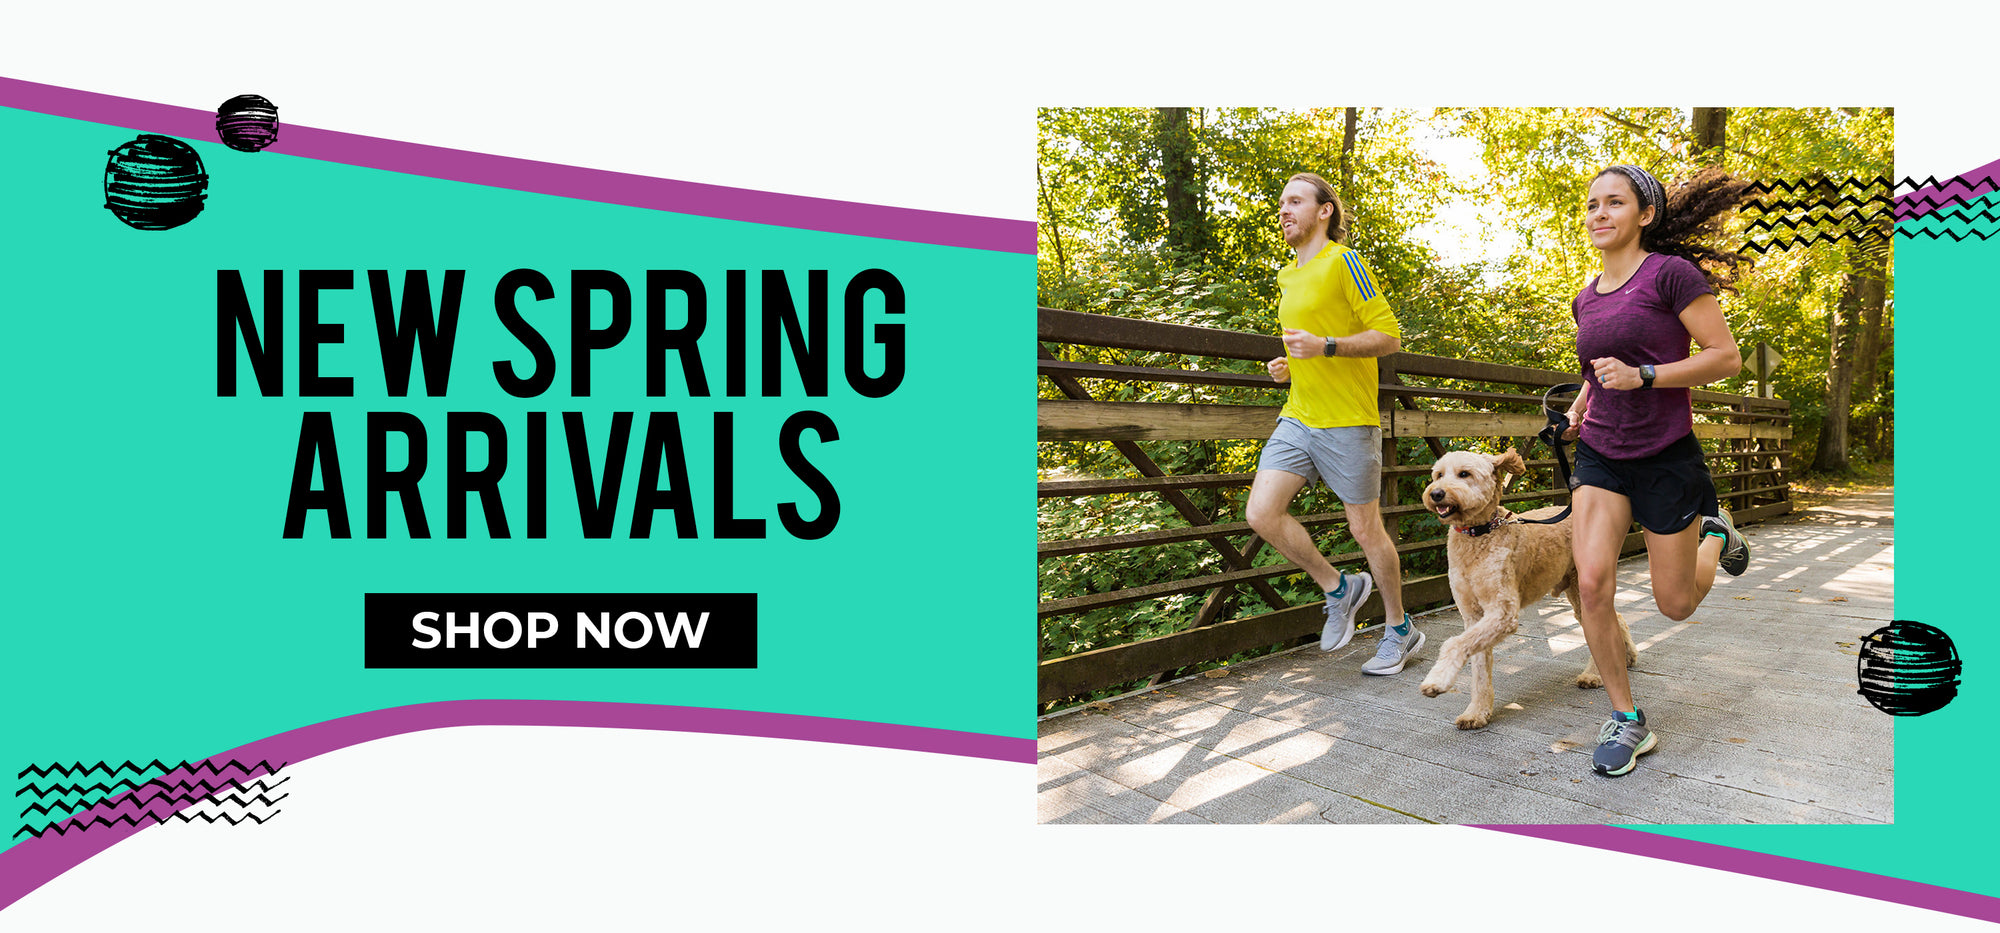 New Spring Arrivals, Shop Now, man and woman running with dog